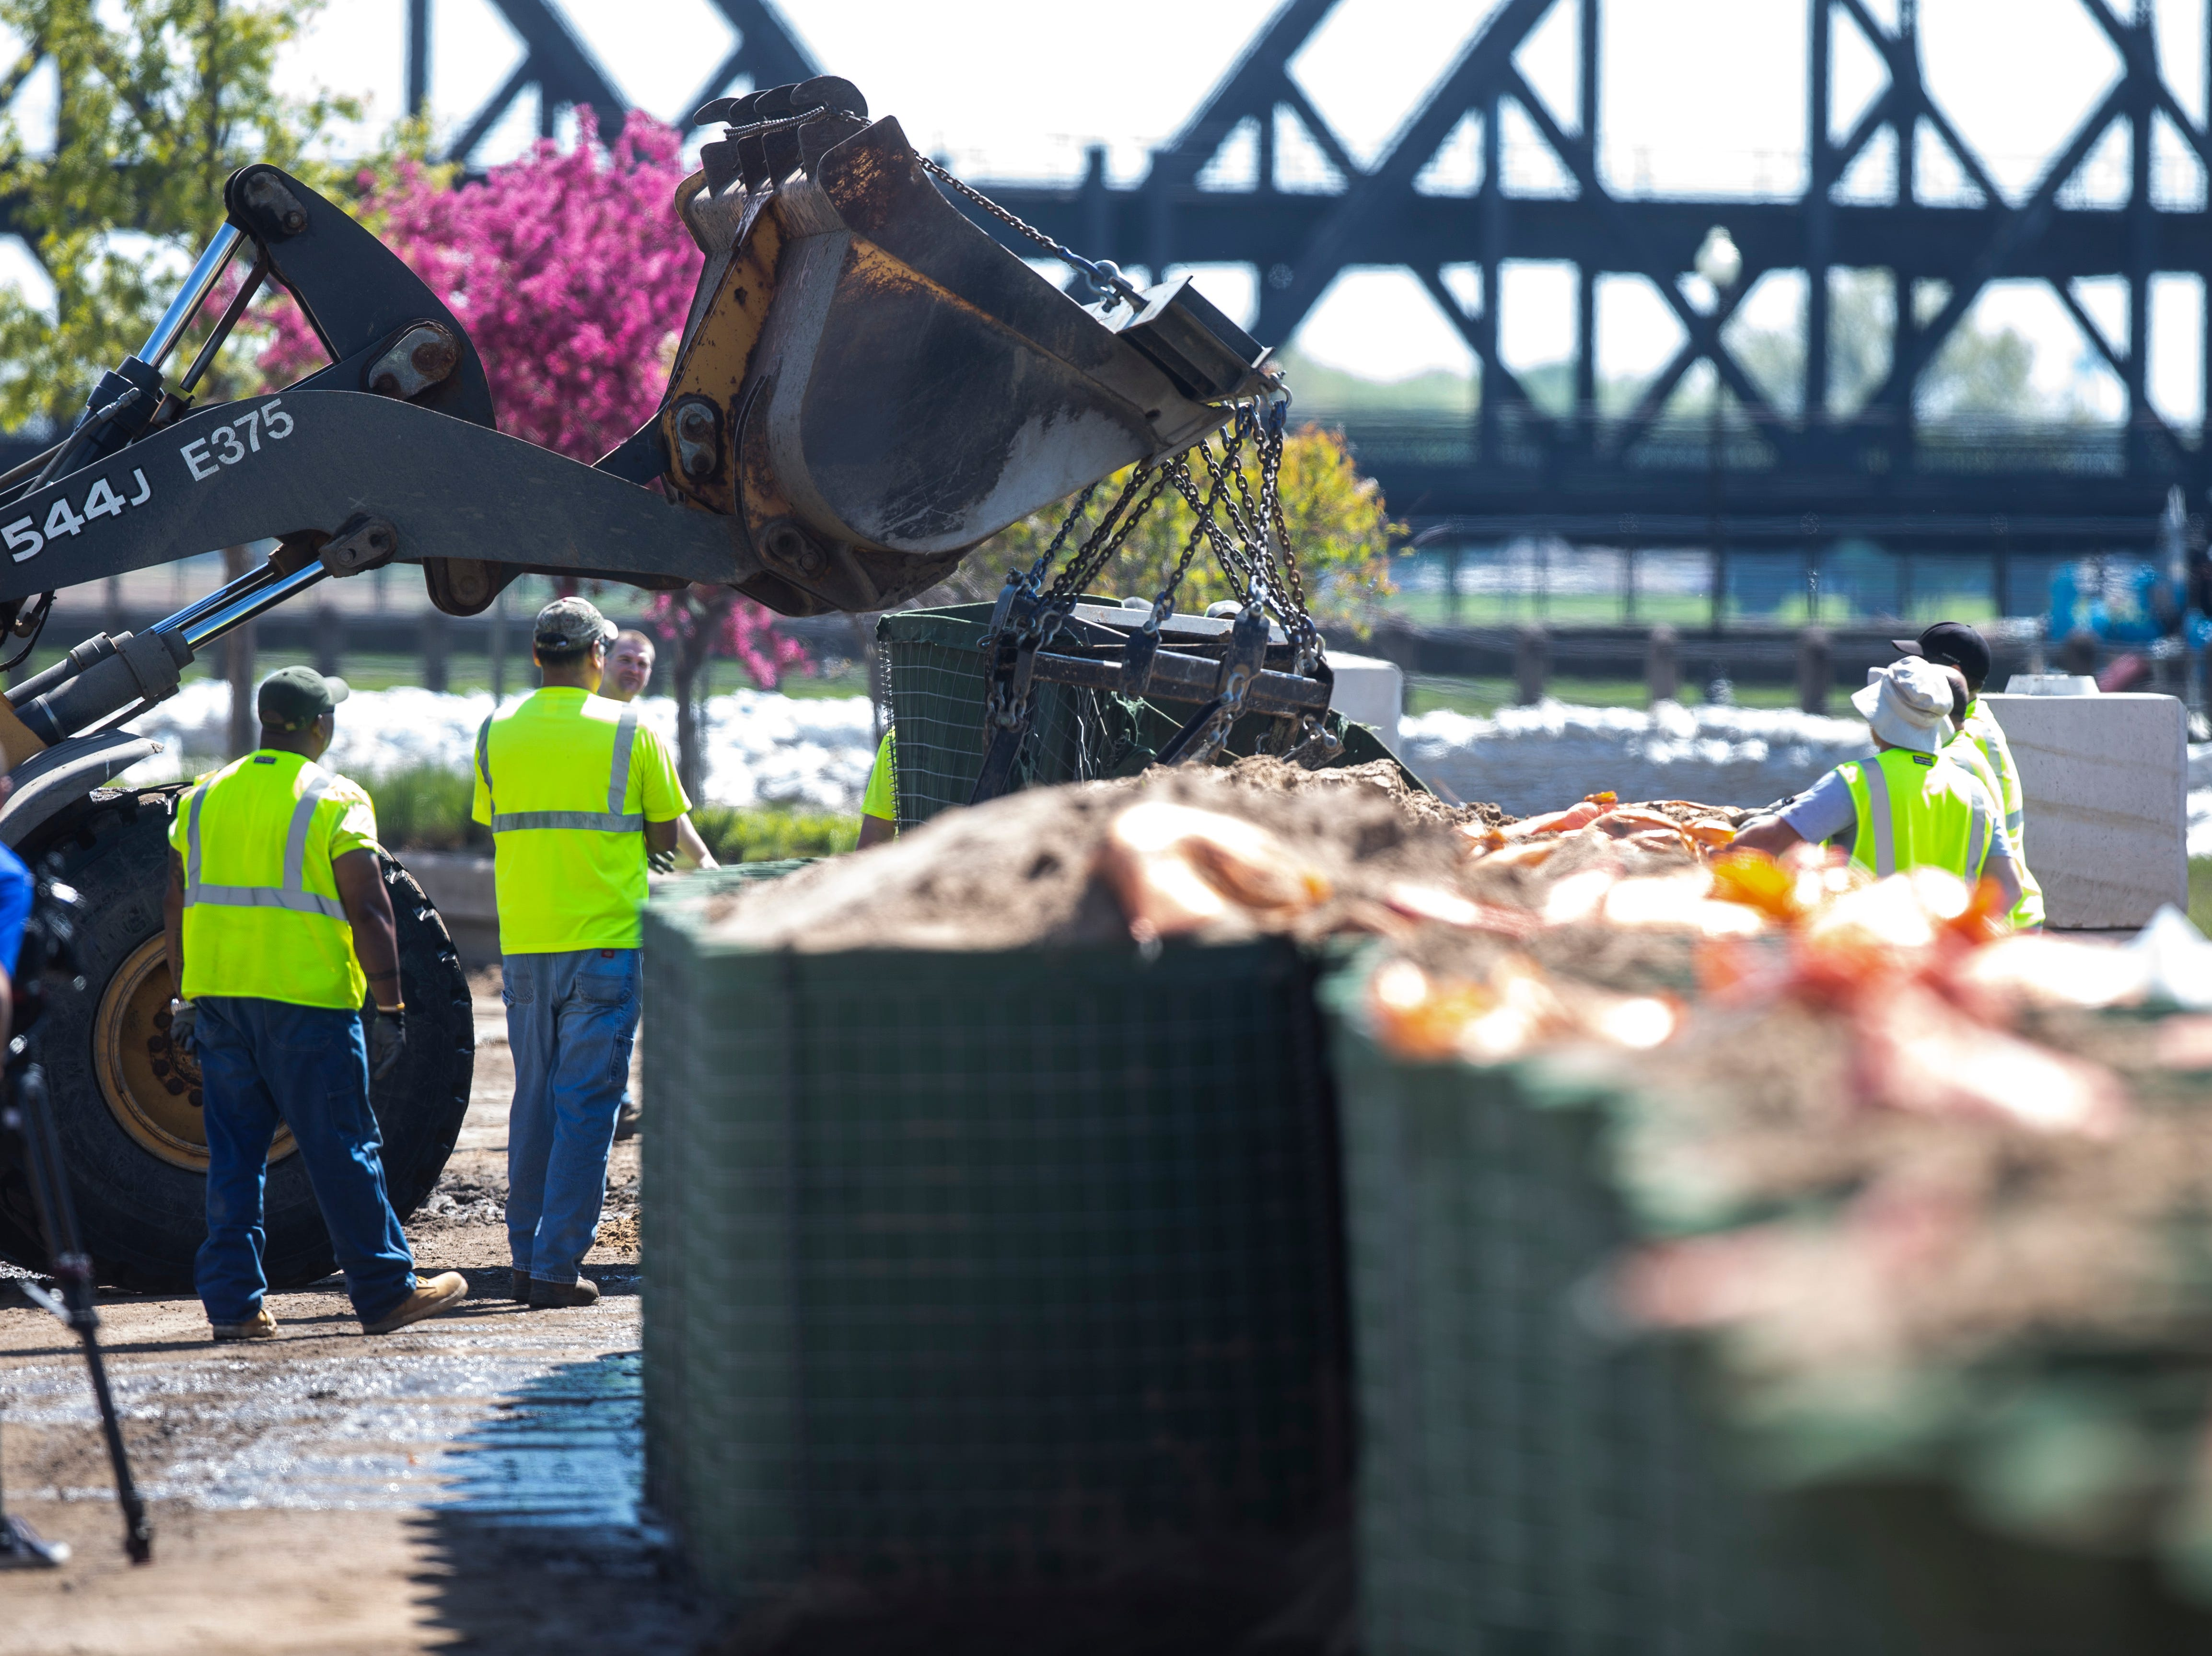 City of Davenport workers being to remove a HESCO barrier along Front Street which was impacted by floodwaters, Wednesday, May 15, 2019, in downtown Davenport, Iowa.